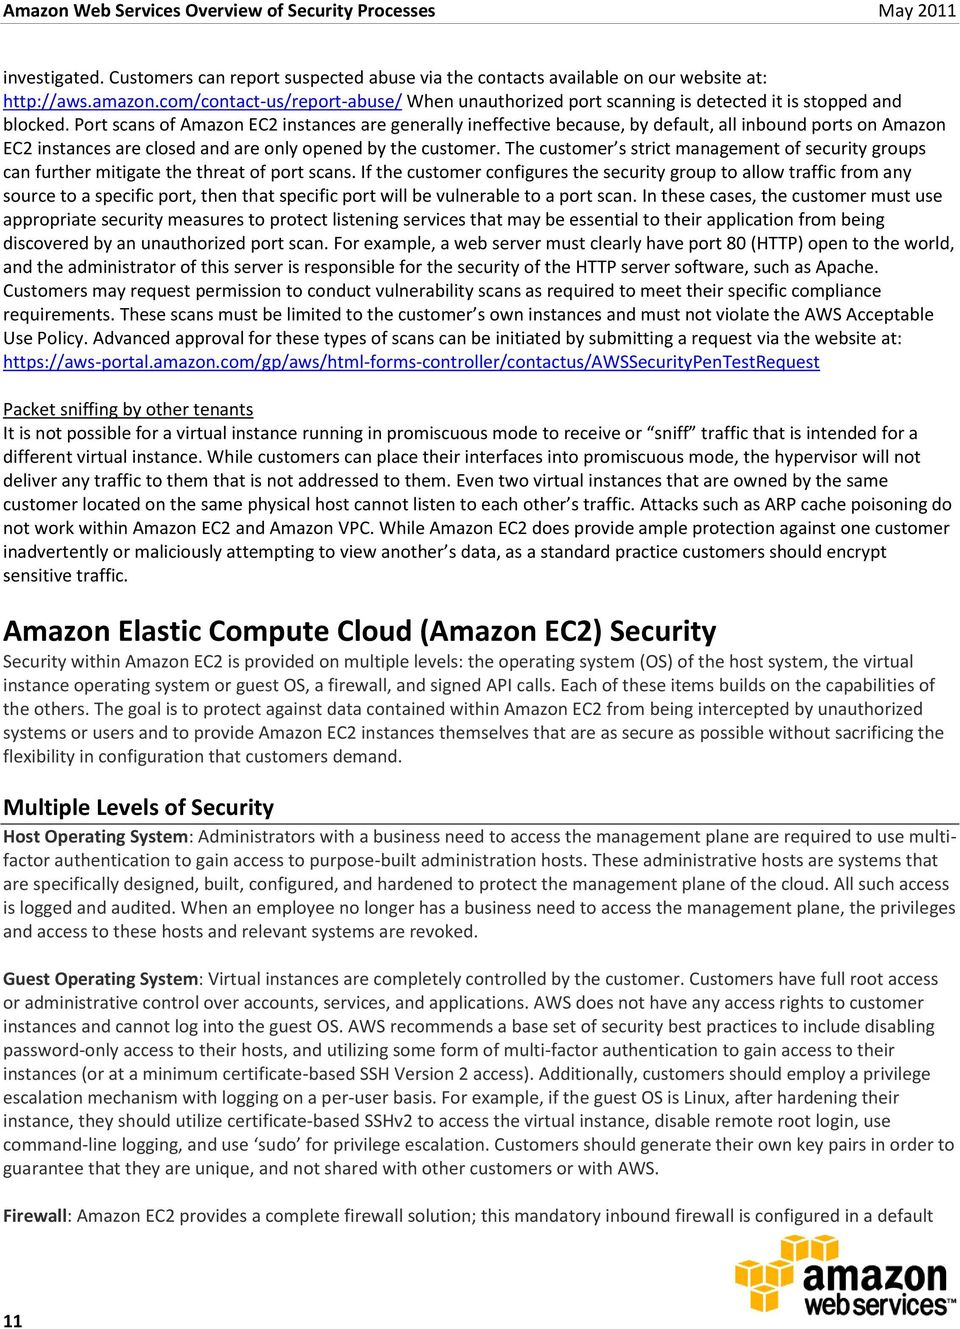 Port scans of Amazon EC2 instances are generally ineffective because, by default, all inbound ports on Amazon EC2 instances are closed and are only opened by the customer.